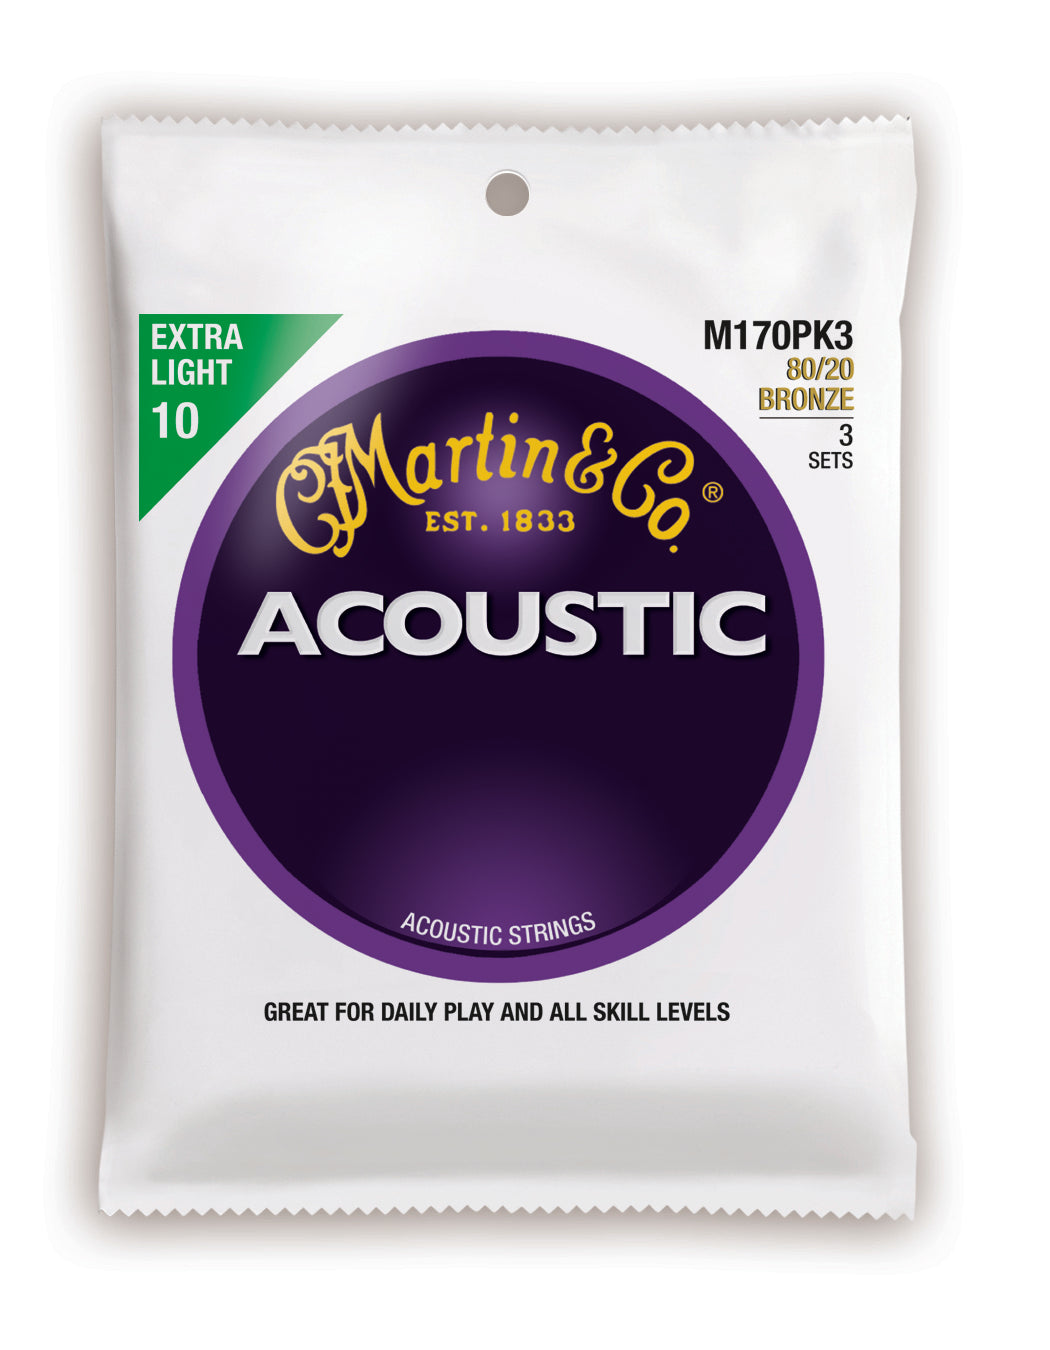 Martin Acoustic 80/20 Bronze Guitar Strings -.010-.047 Extra Light - 3 Pack